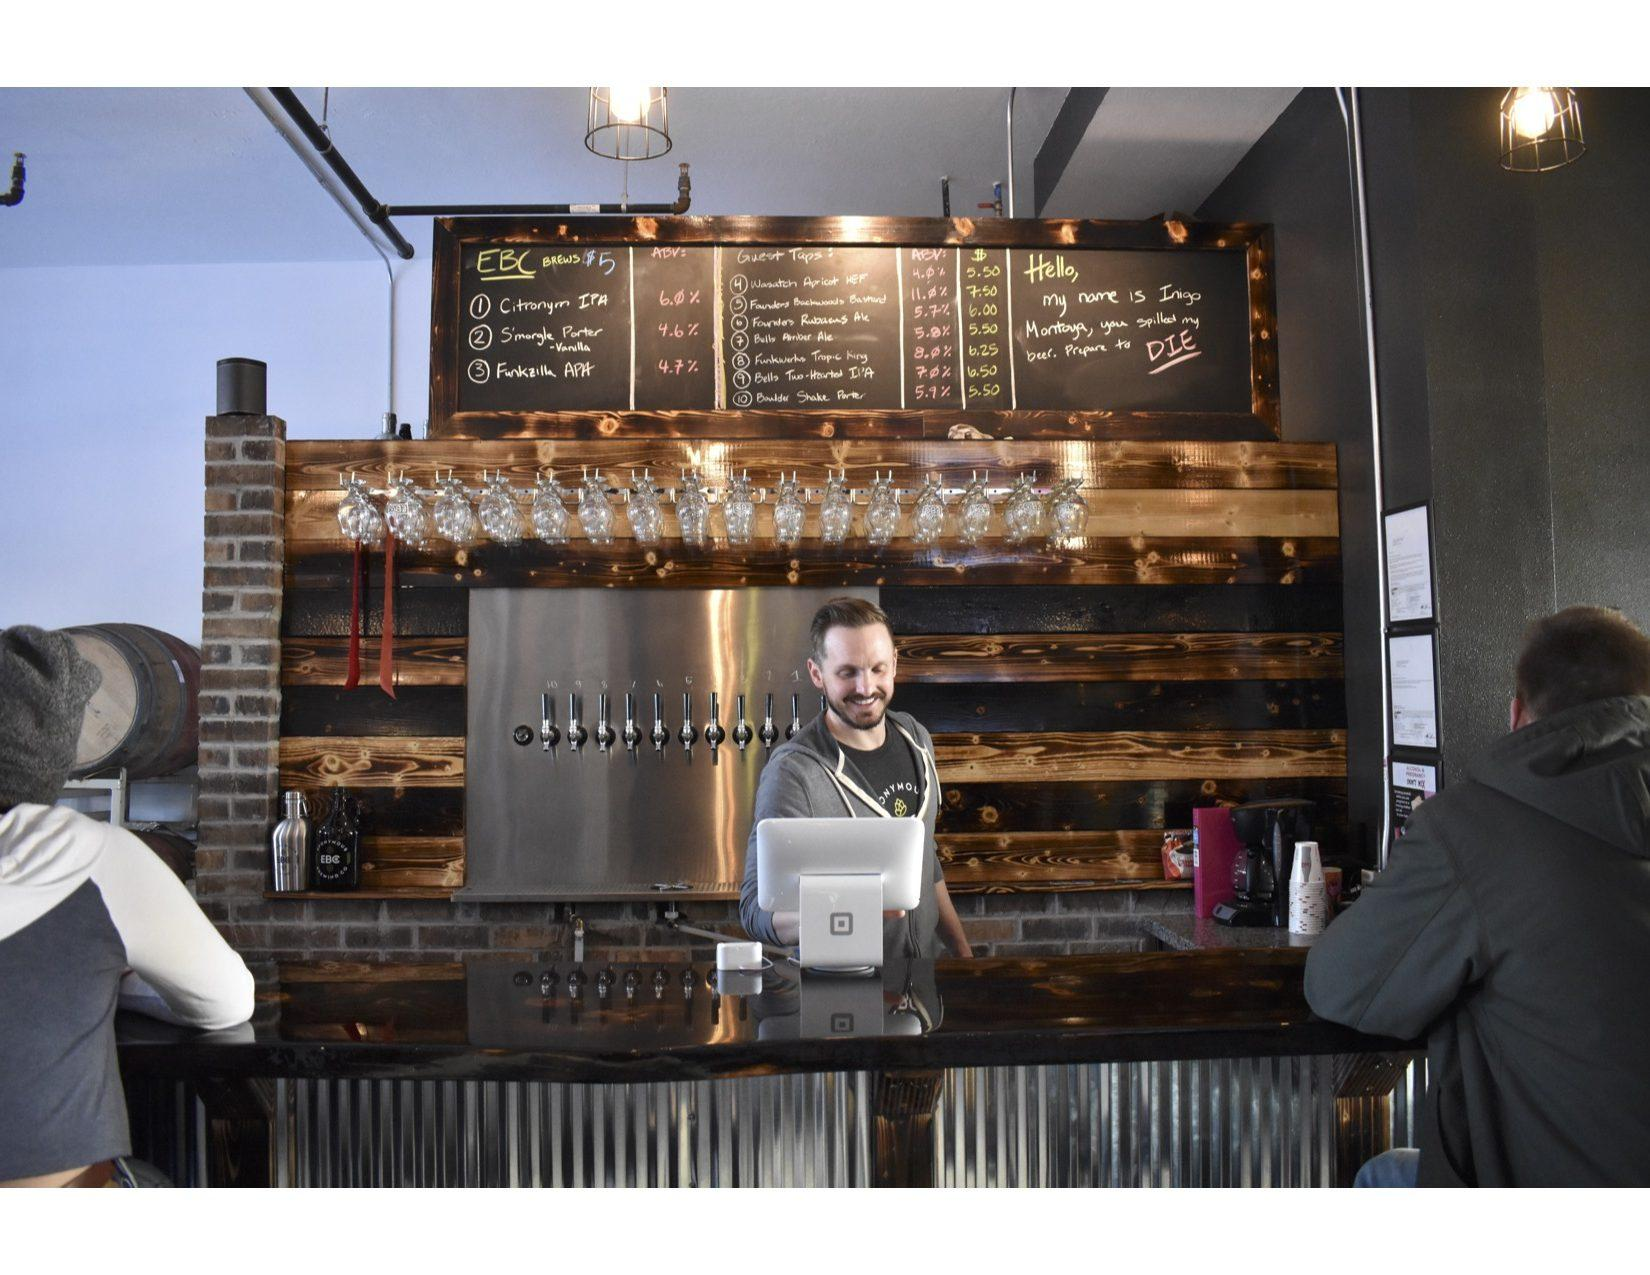 ABBY FULLENKAMP Owner Kyle Weber servers customers March 12 at Eponymous Brewing Co. Eponymous opened up March 2018 and is located in The Lofts at Main, 126 S. Main Ave.